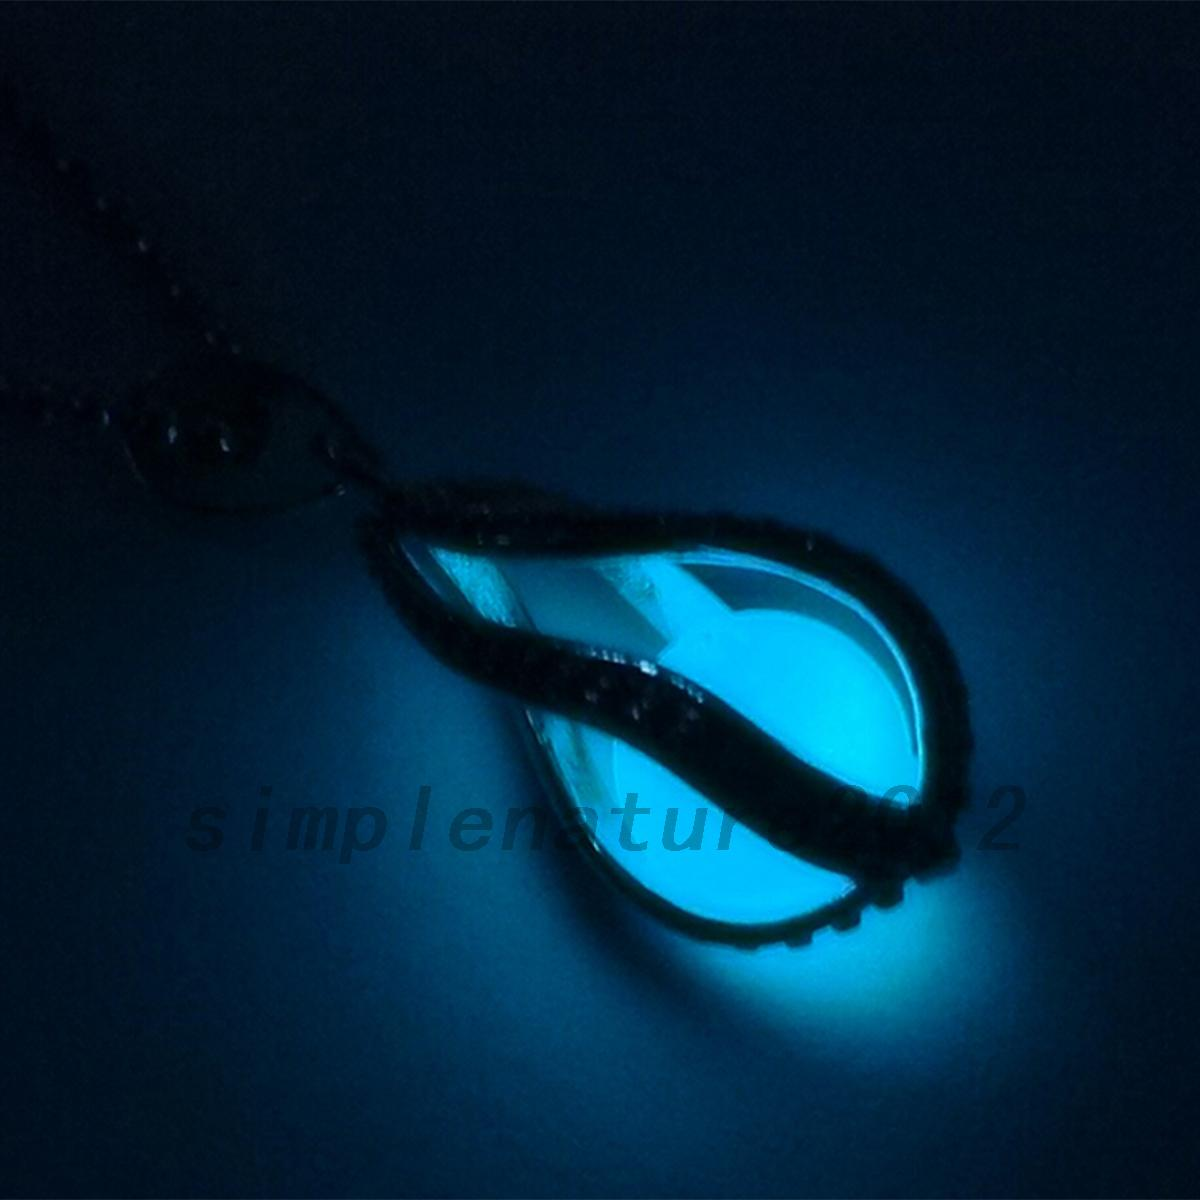 Water-Drop-Locket-Glow-In-The-Dark-Pendant-Necklaces-Luminous-Fashion-Jewelry